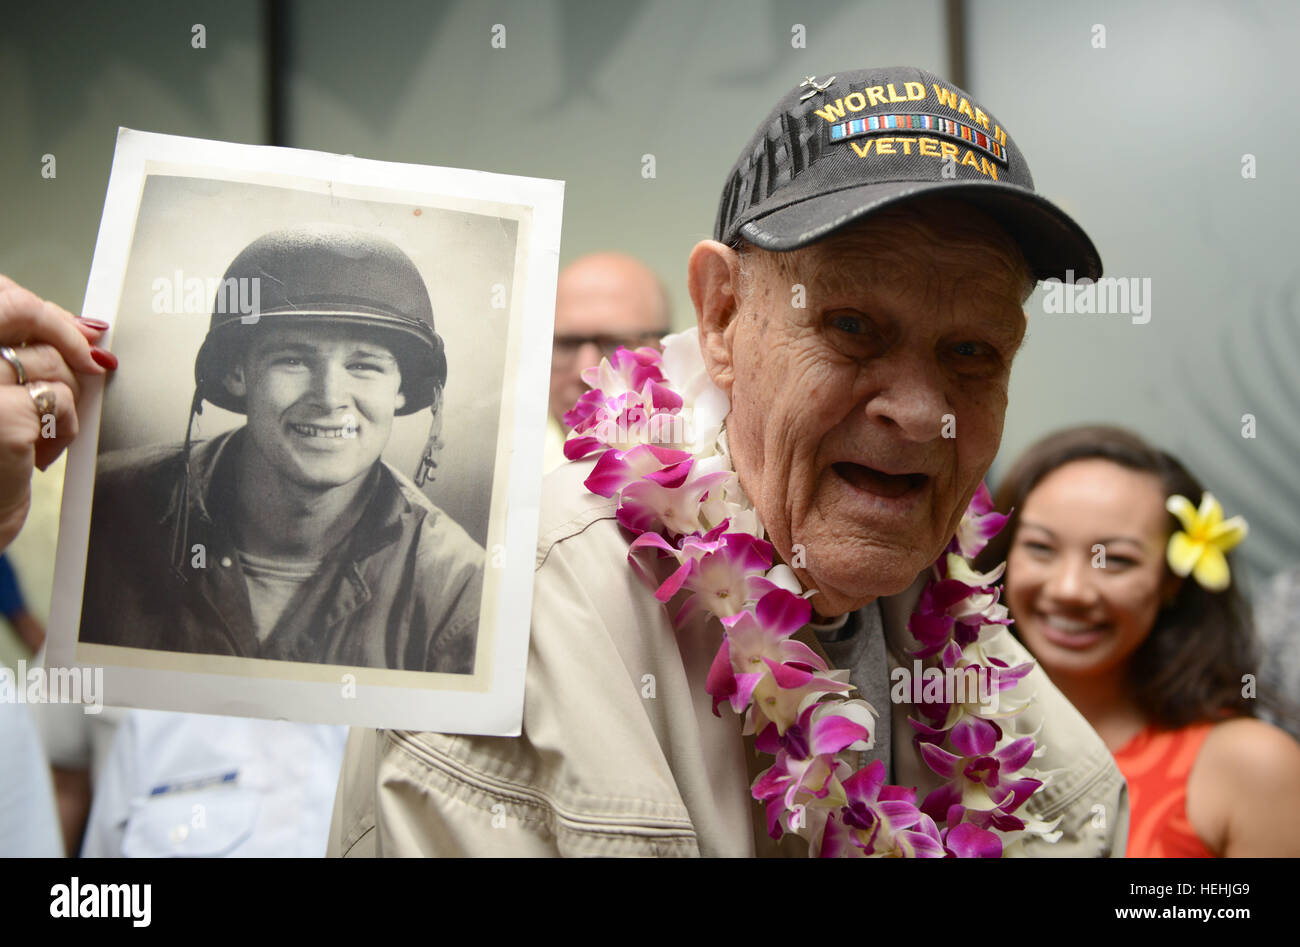 A U.S. Navy World War II veteran holds up a photo of himself after arriving at the Honolulu International Airport - Stock Image